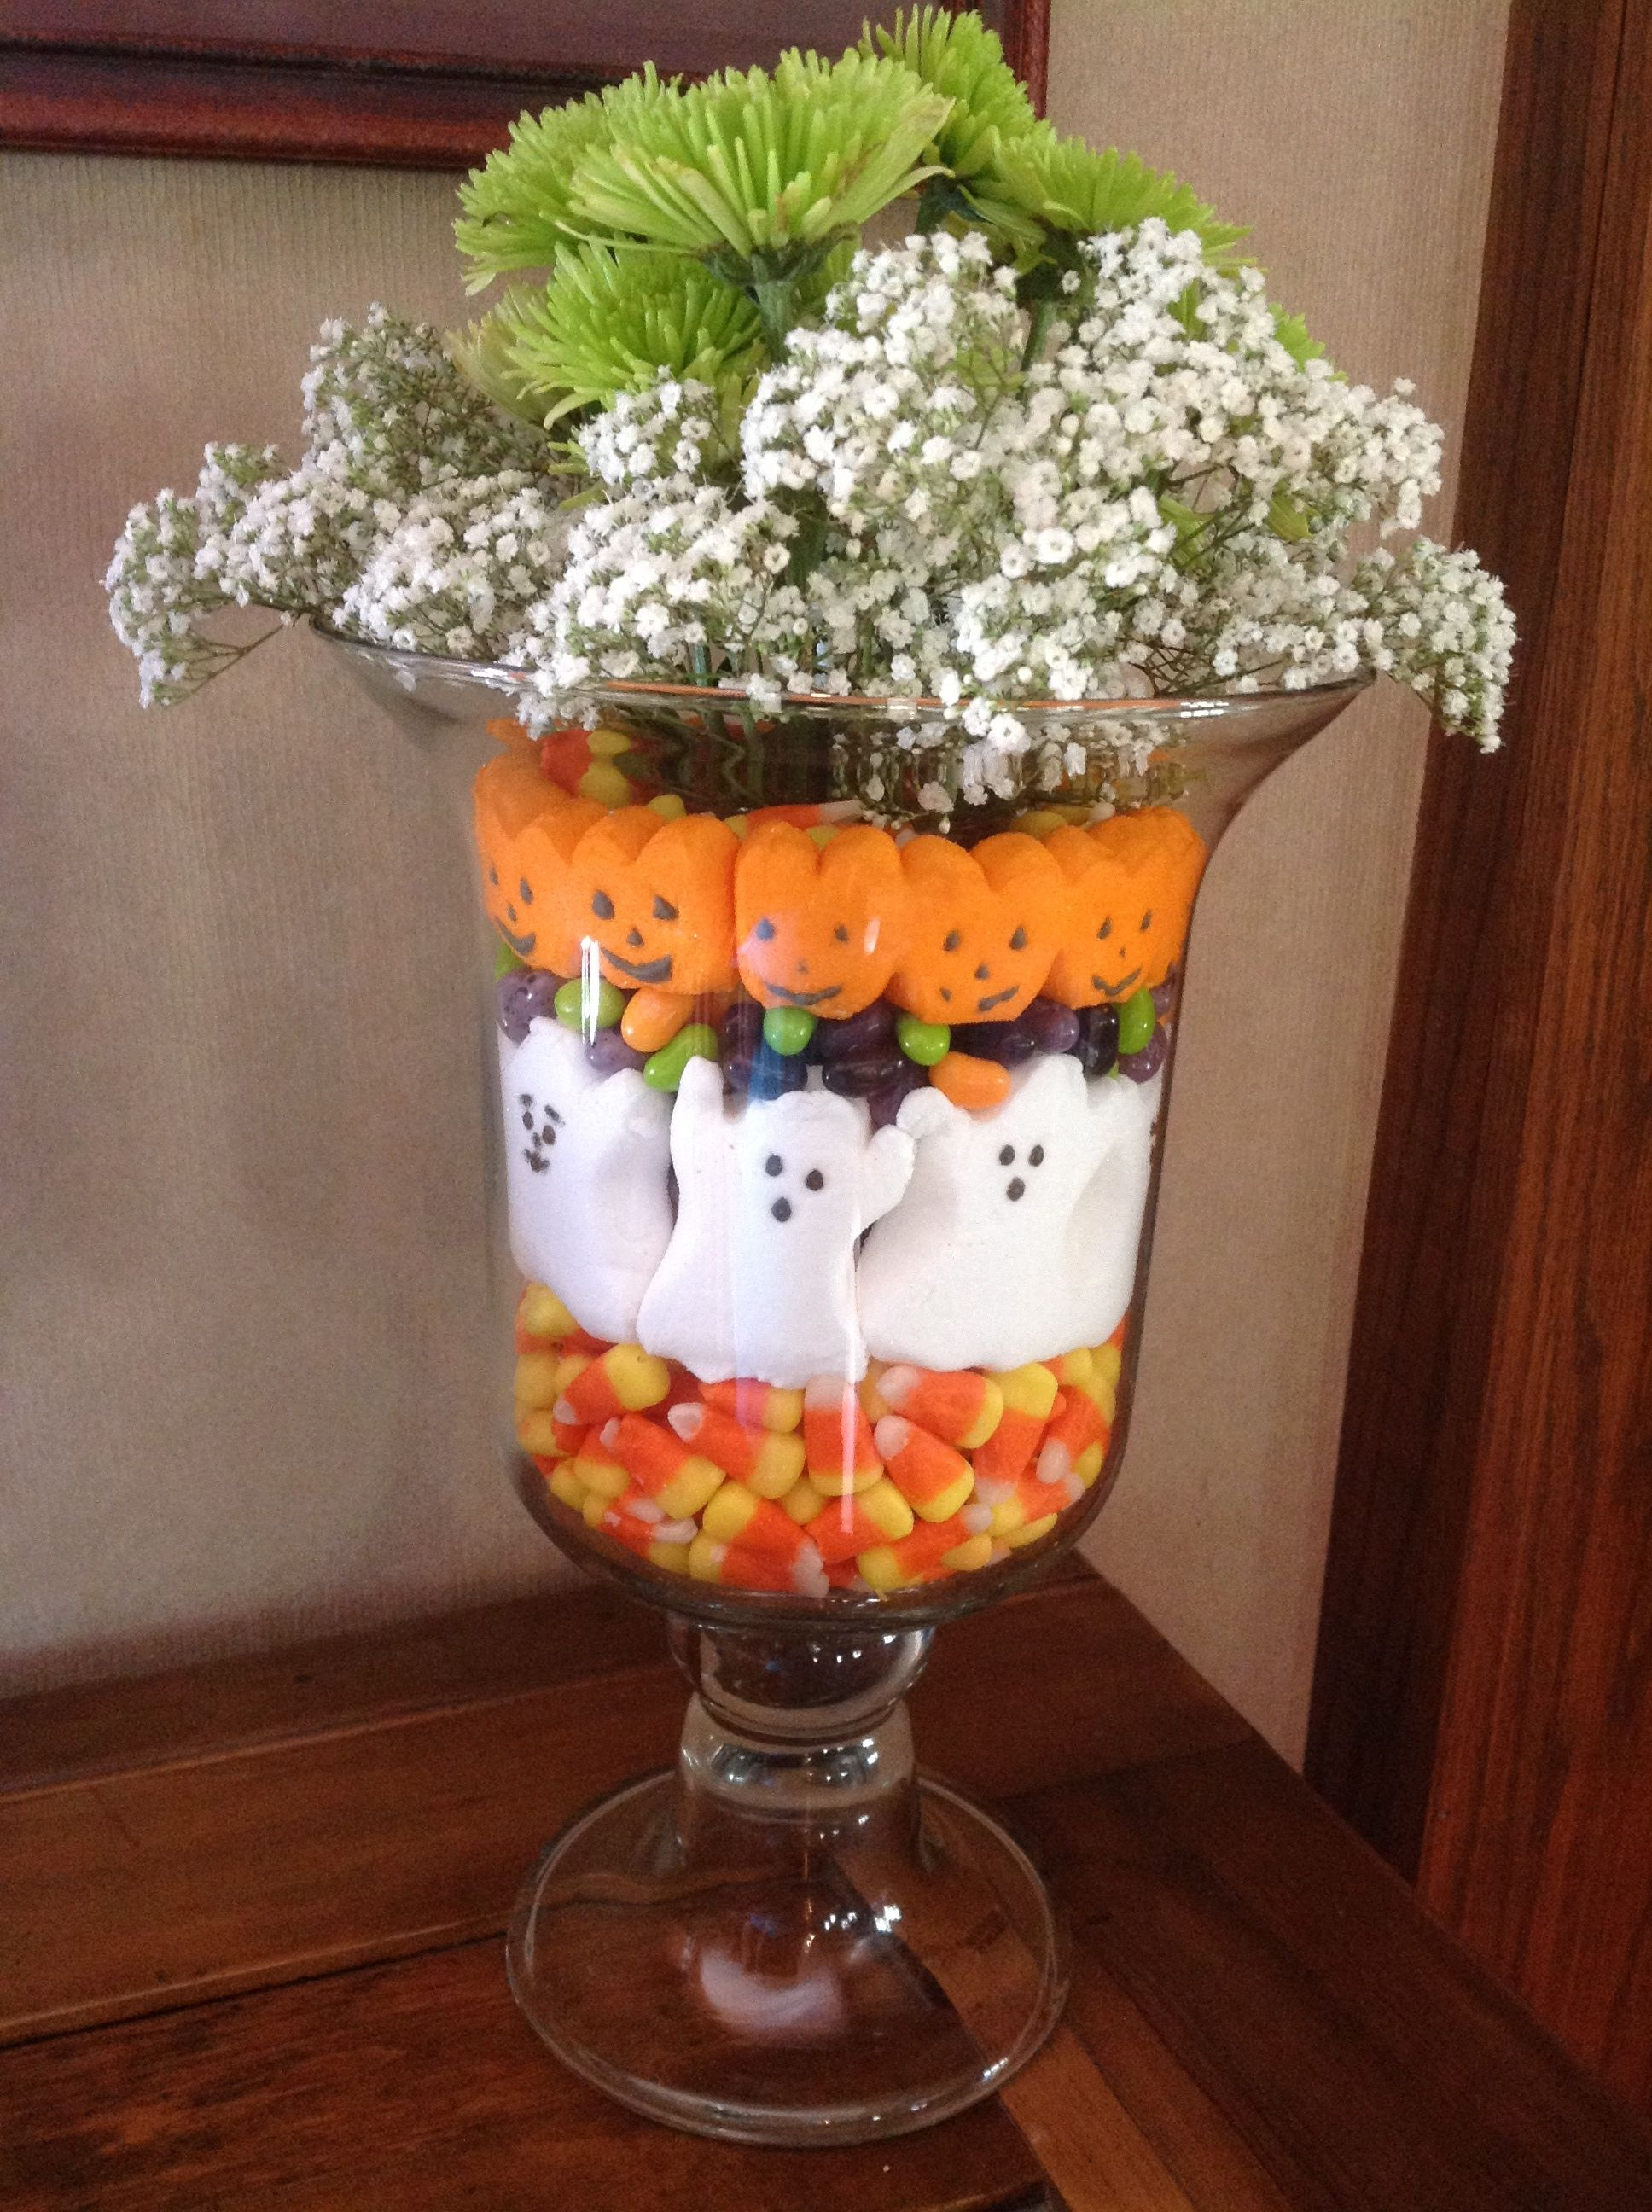 decorating with ghostsorhello october - Candy Corn Halloween Decorations